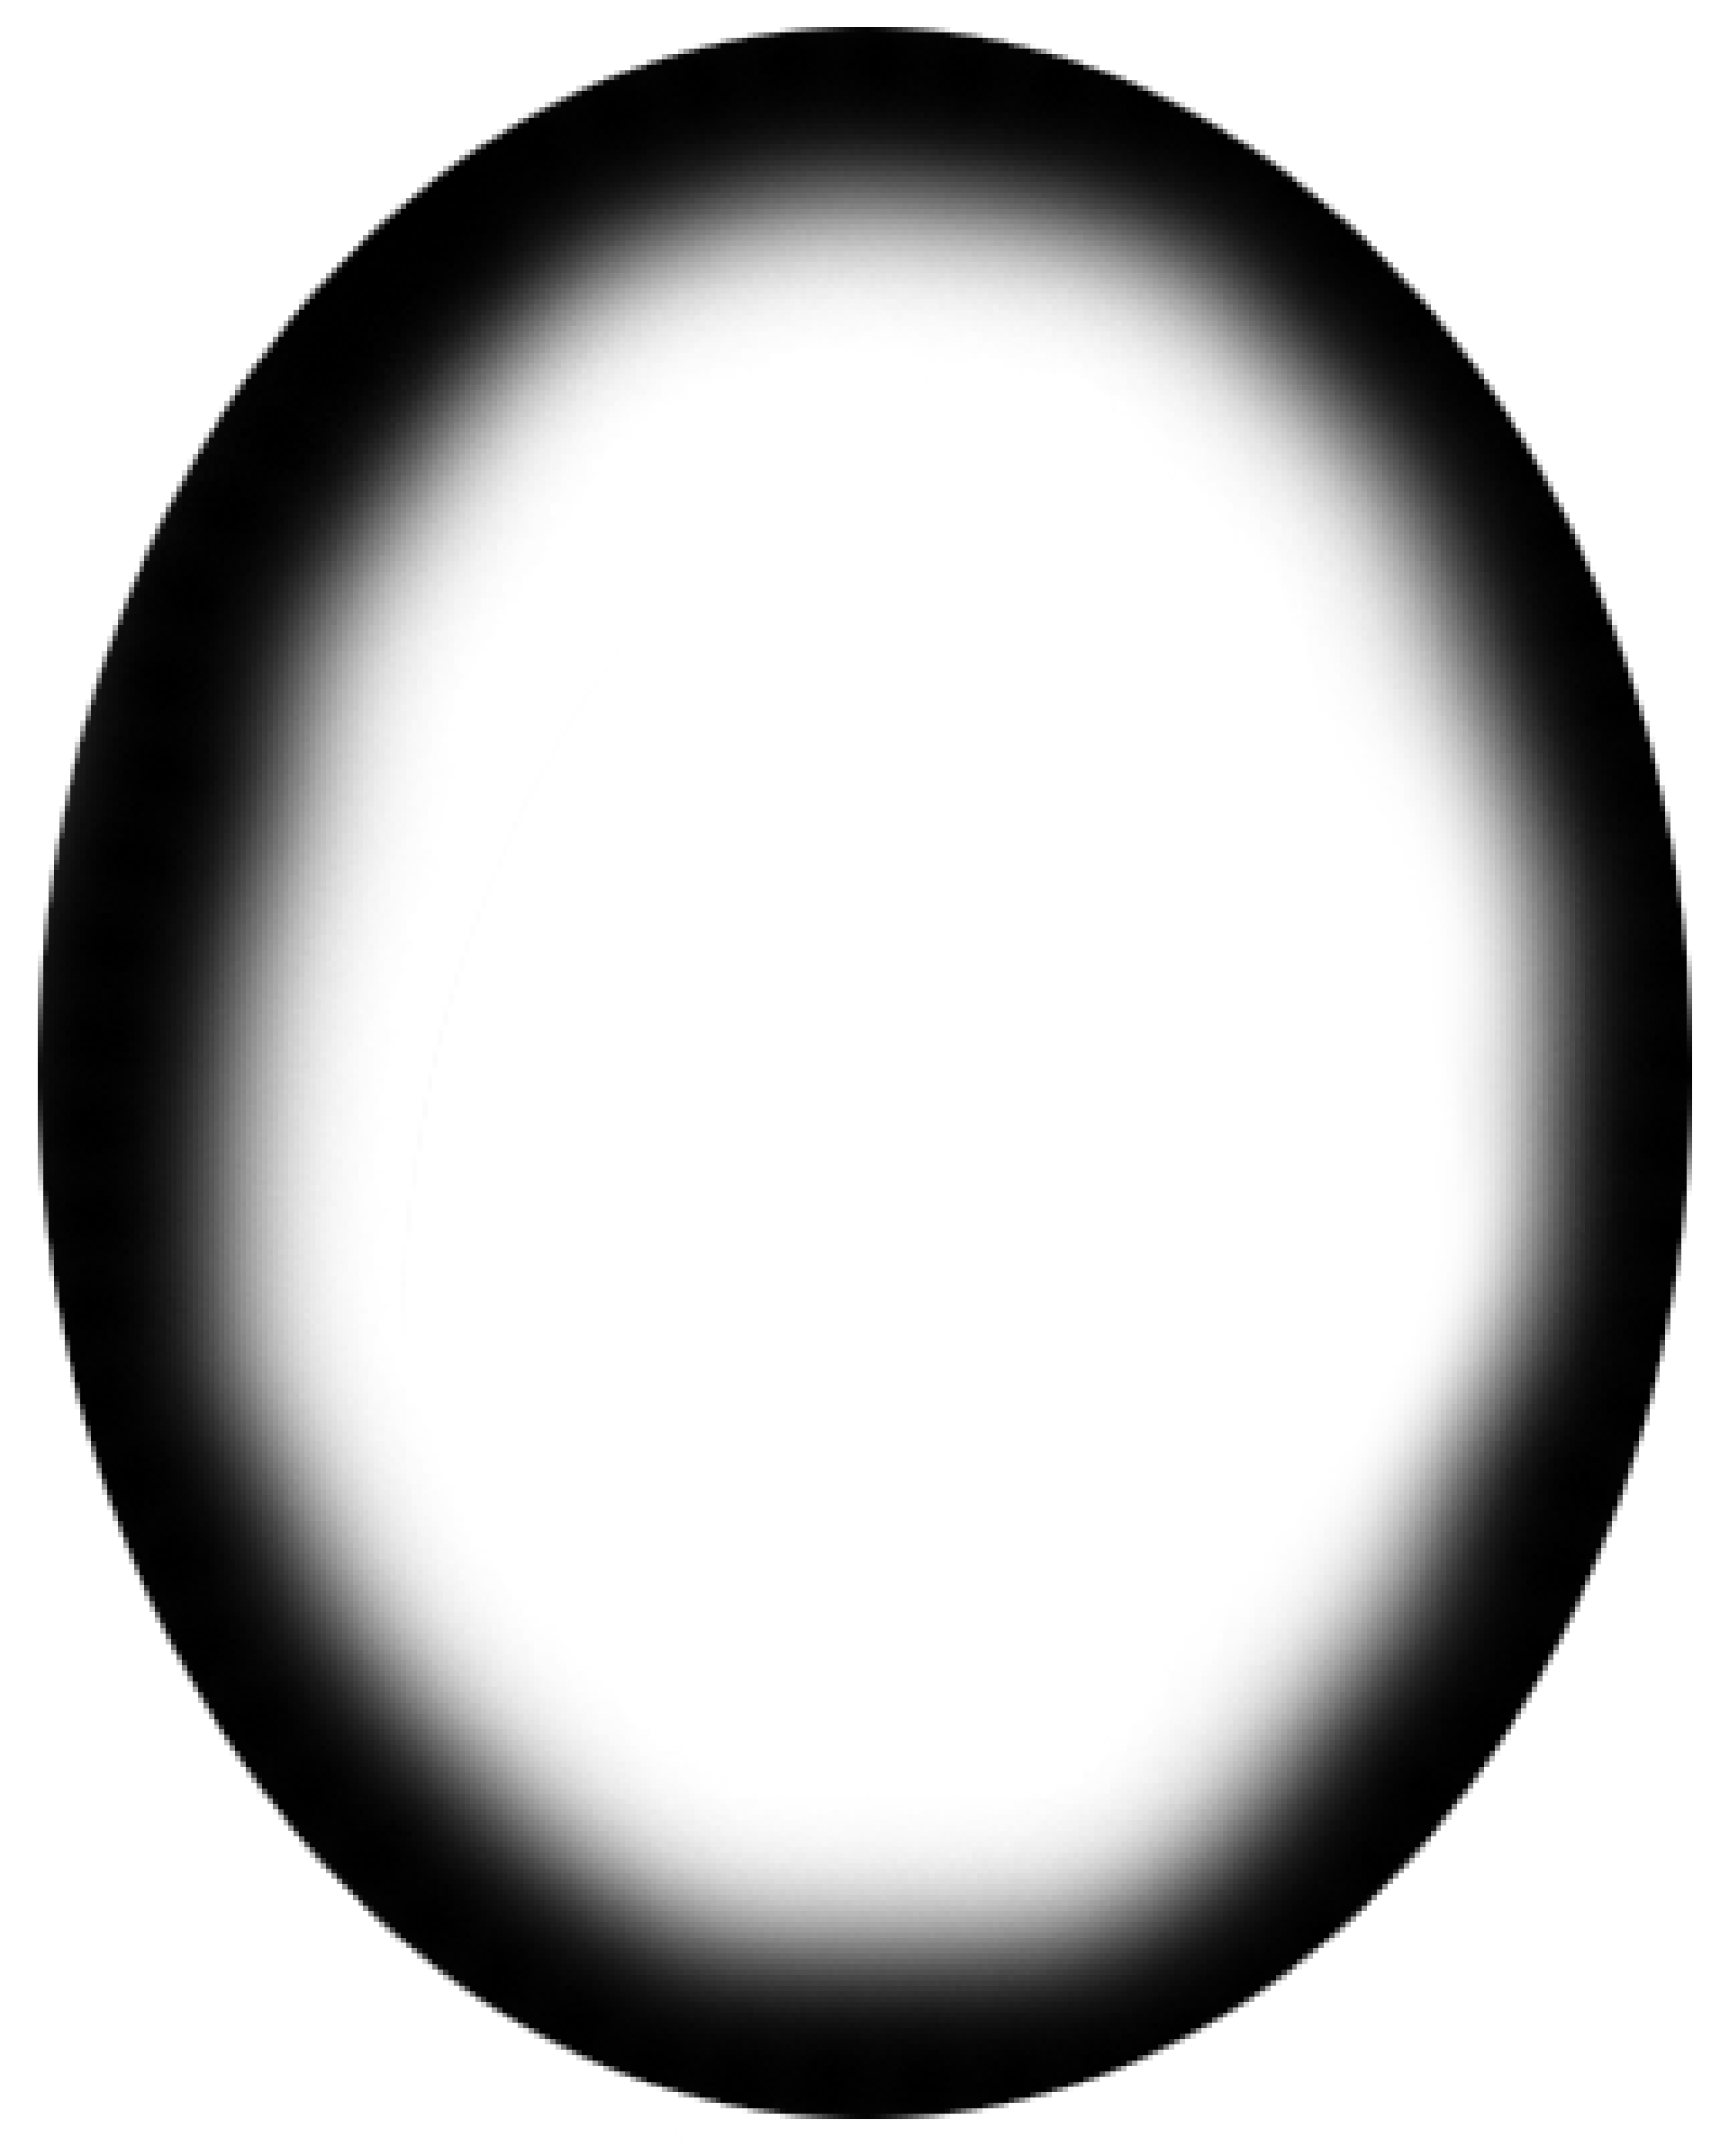 White eye png. Image my new angry